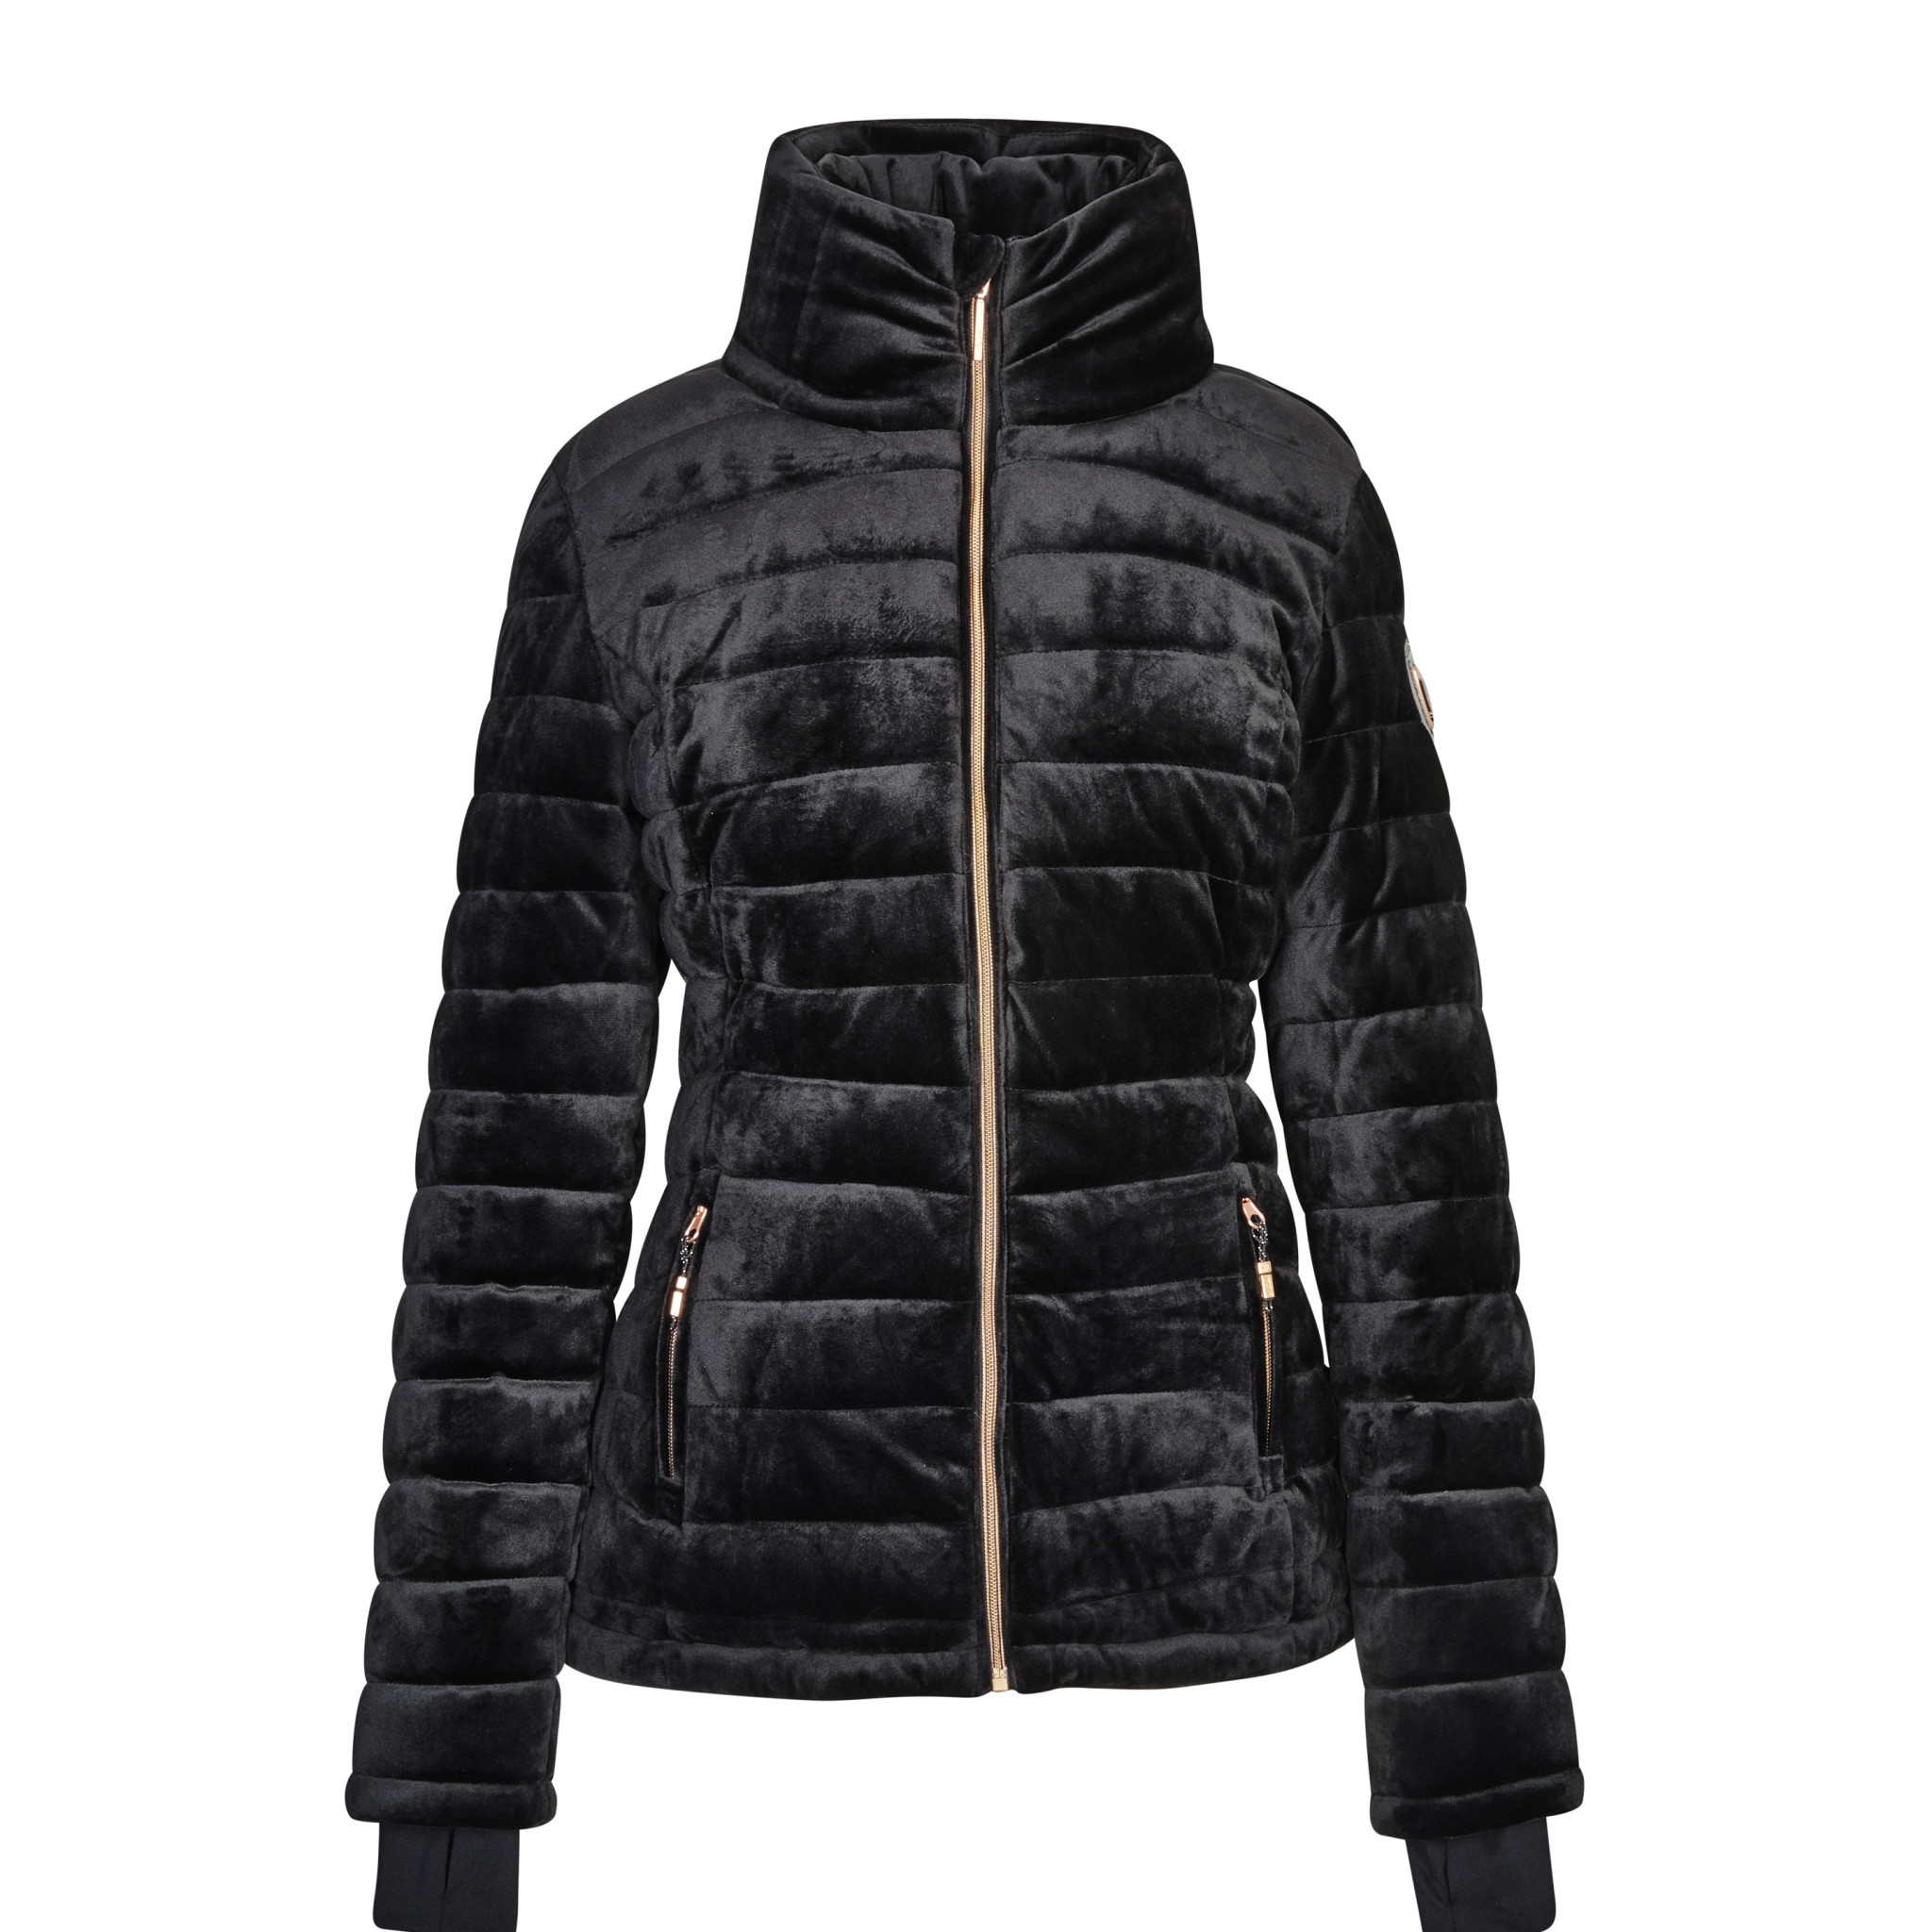 Killtec Ladies Swana Ski Jacket